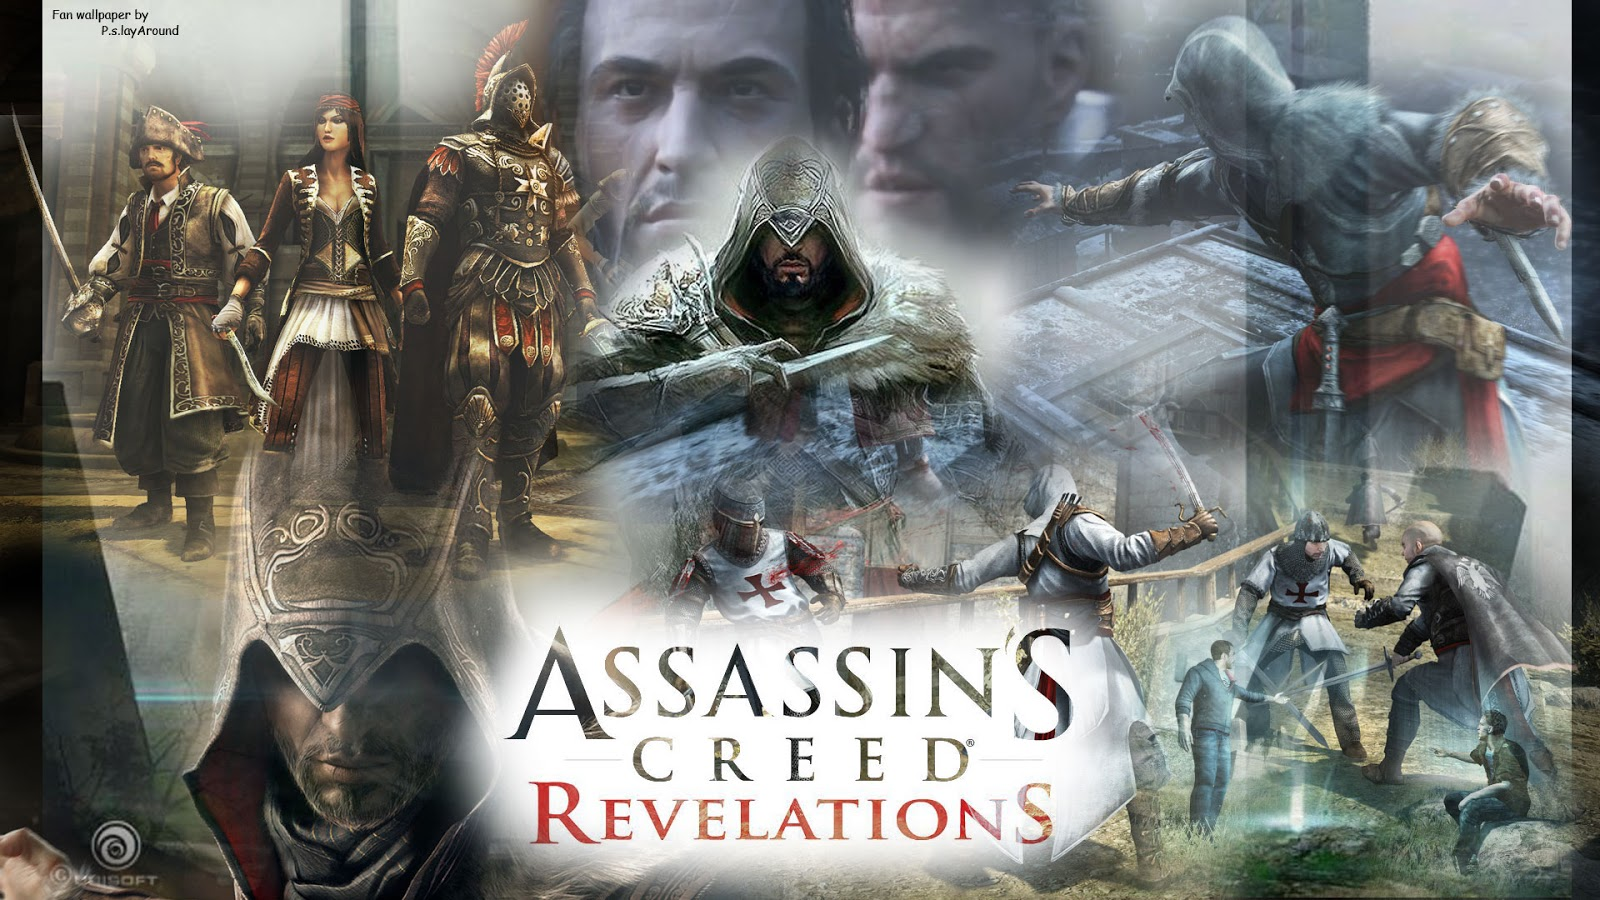 Pslayaround Assassins Creed Revelation Wallpaper